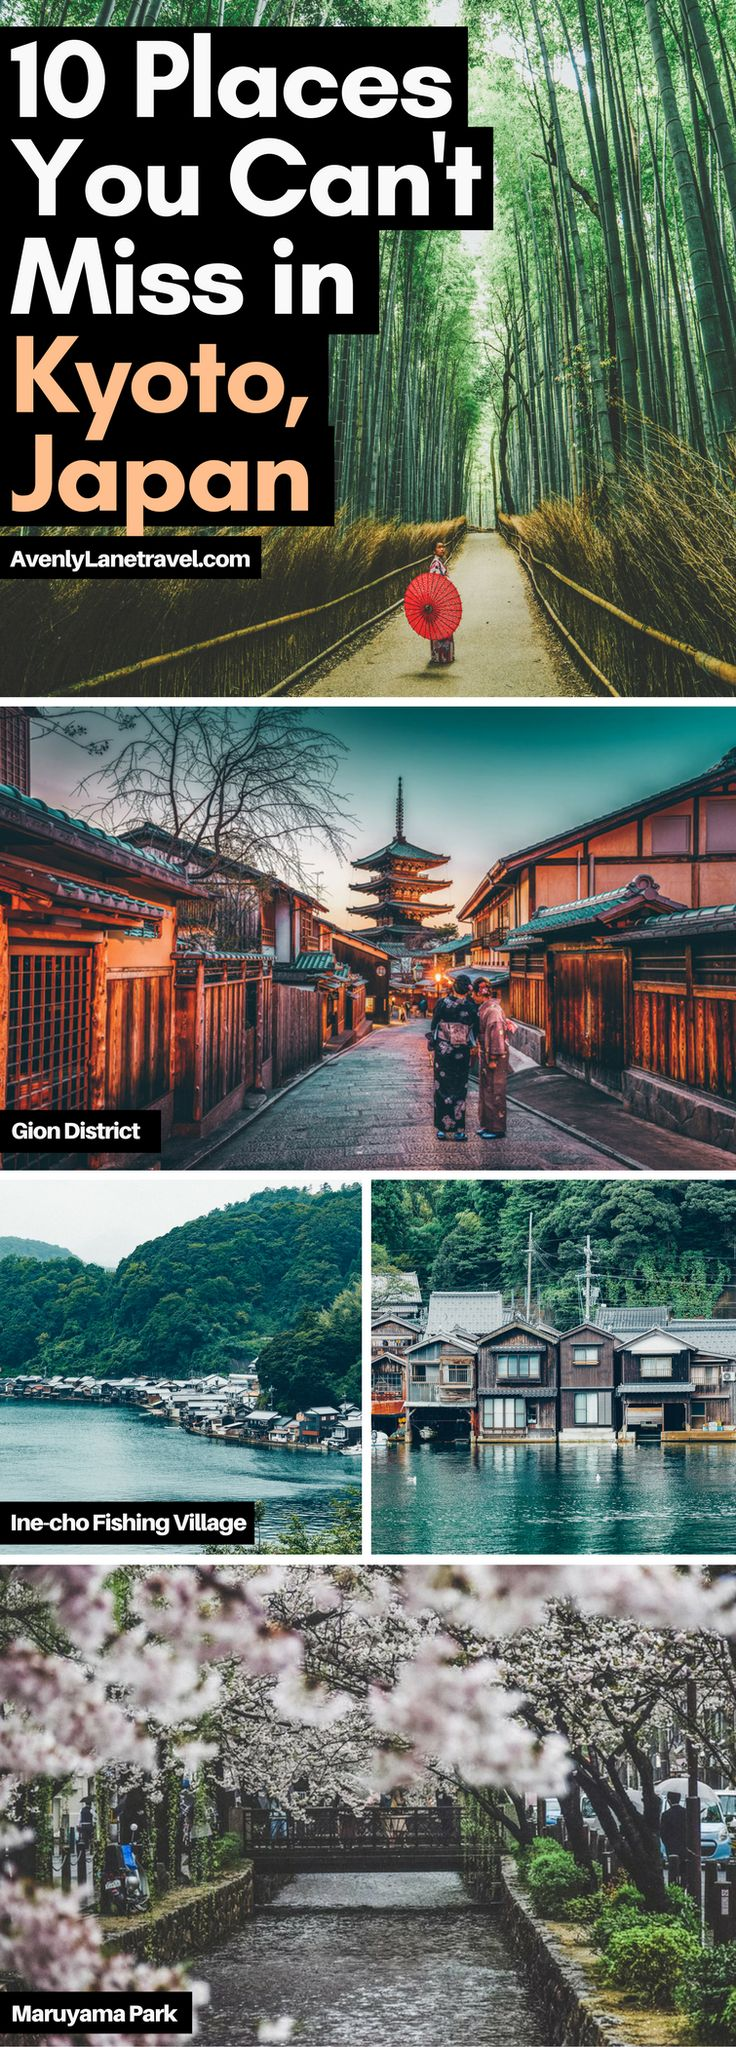 Discover the Top 10 Things to do in Kyoto, Japan! From the incredible bamboo forest to the beautiful shrines and temples, Kyoto is definitely a city you do NOT want to miss when you are traveling to Japan. Read the full article at http://www.avenlylanetravel.com/best-things-to-do-in-kyoto-japan/ #avenlylanetravel #kyoto #japan #travel